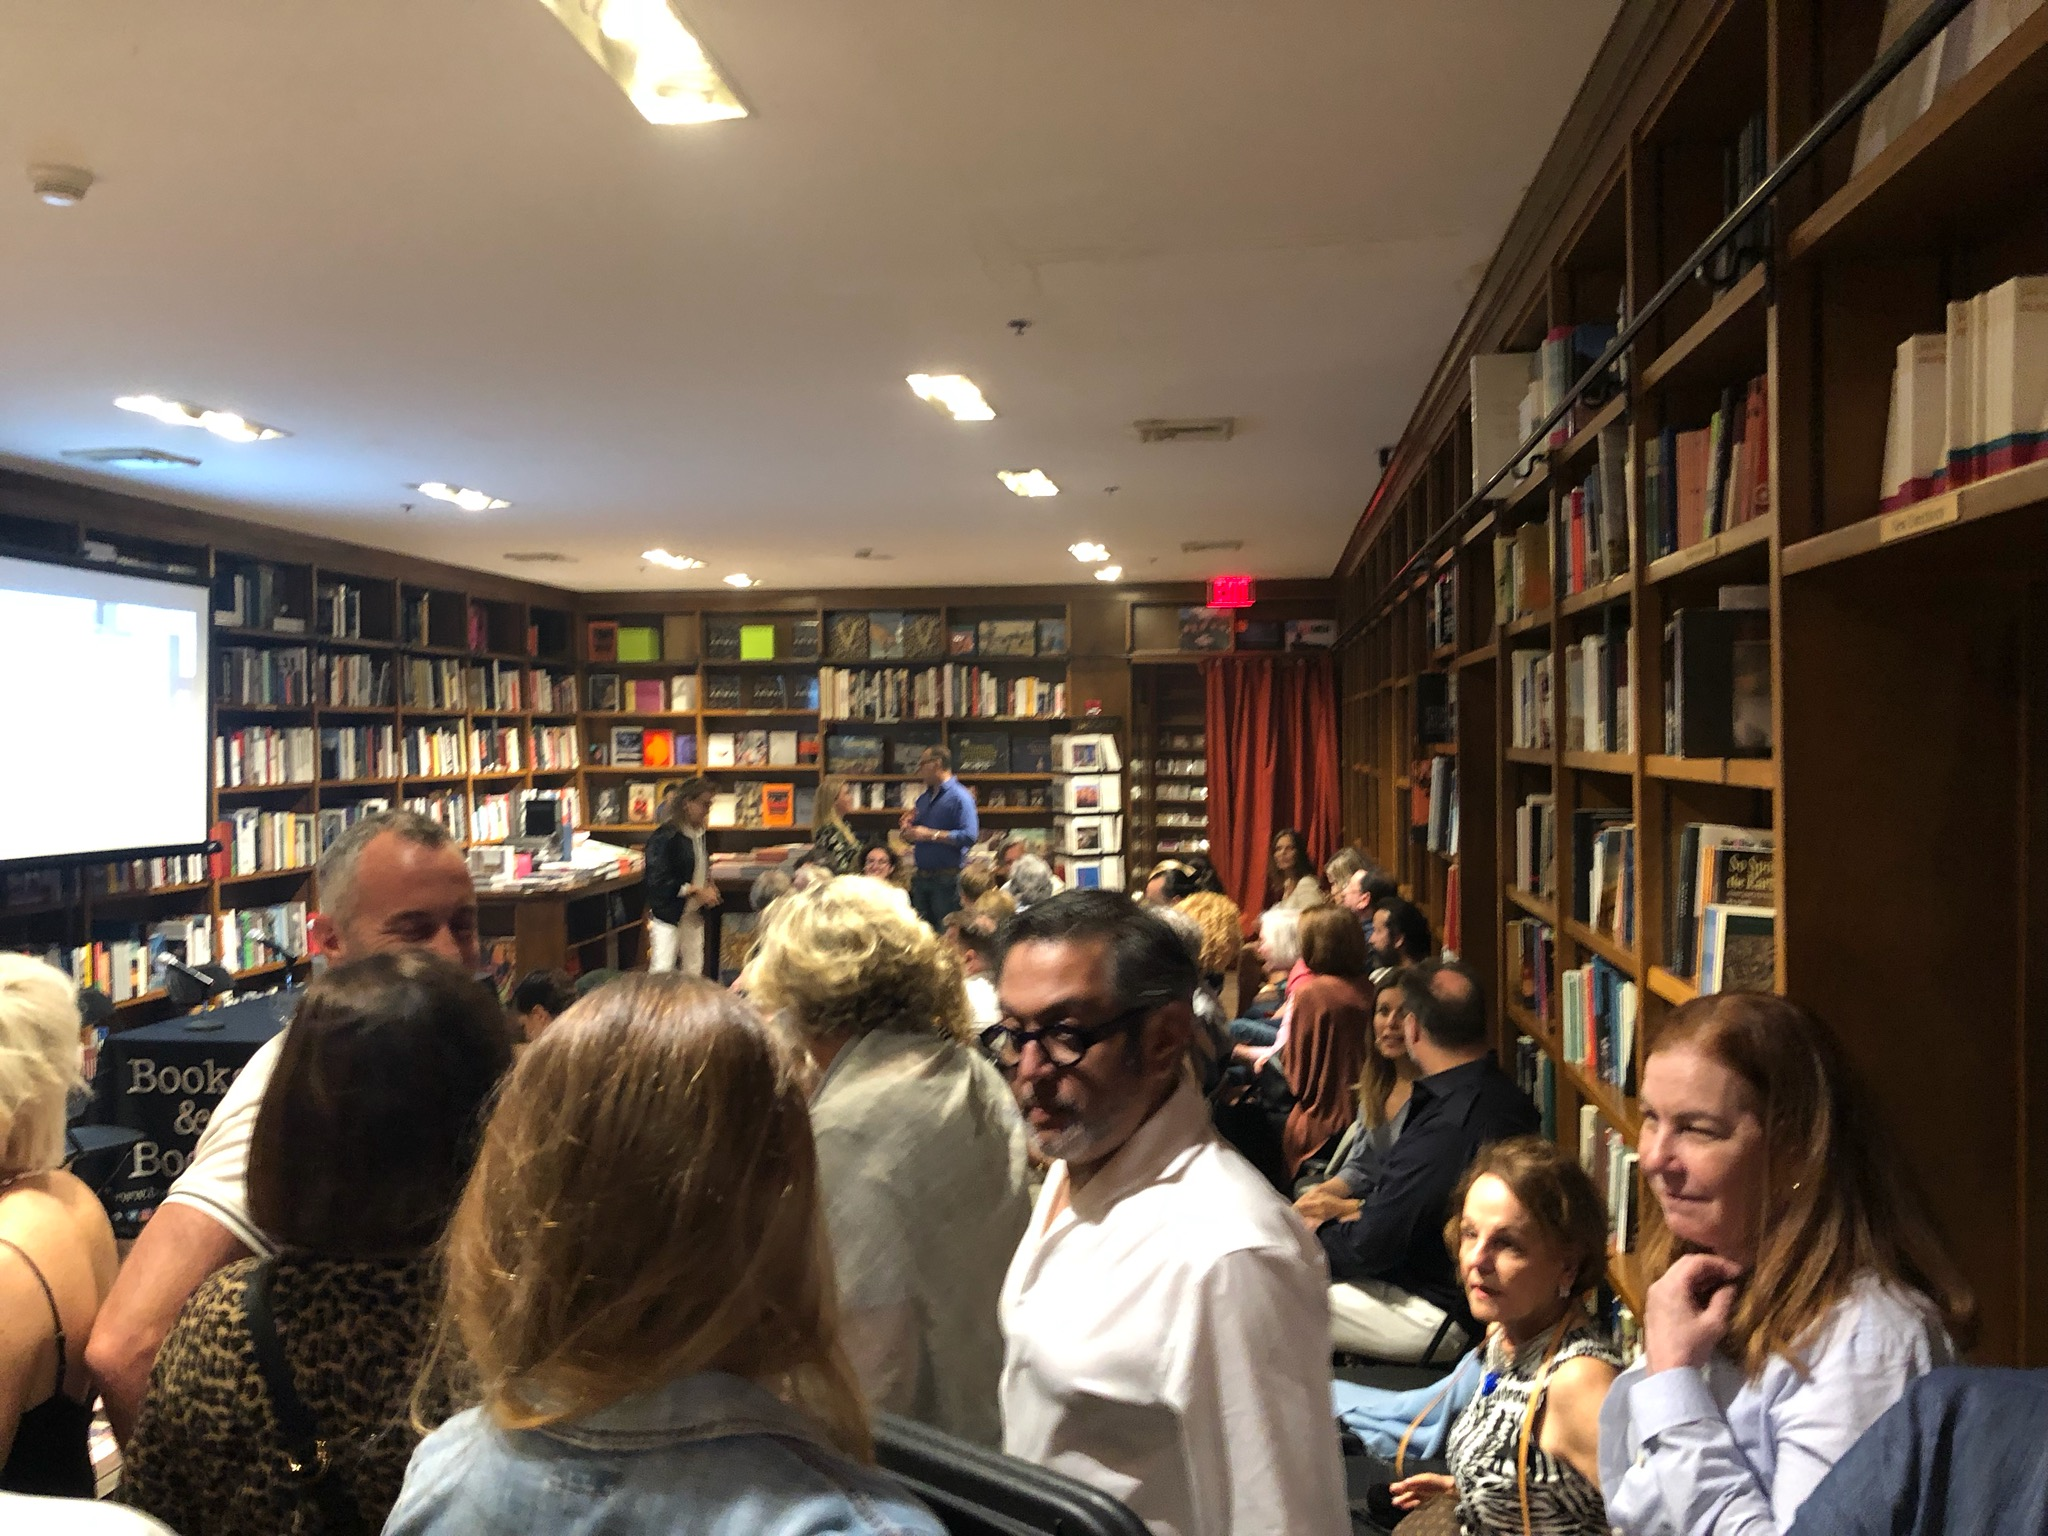 A full house at Coral Gables!